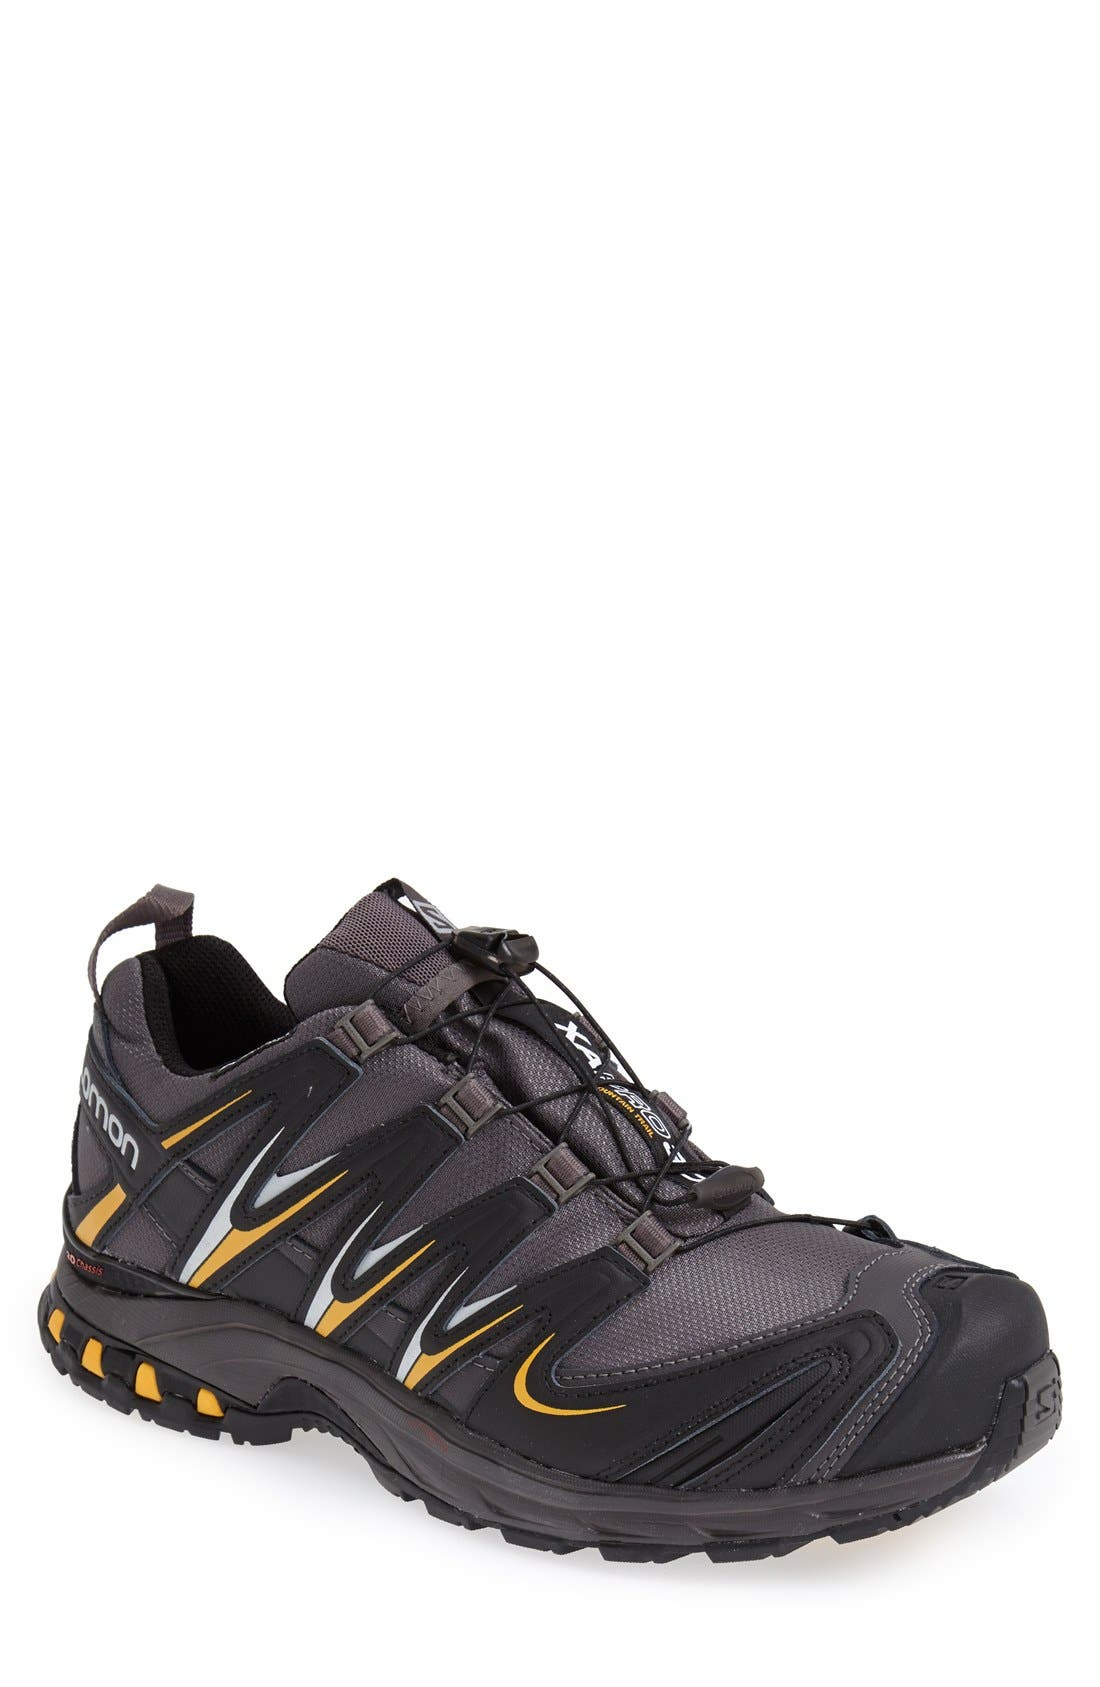 Alternate Image 1 Selected - Salomon 'XA Pro 3D Ultra CS WP' Trail Running Shoe (Men)